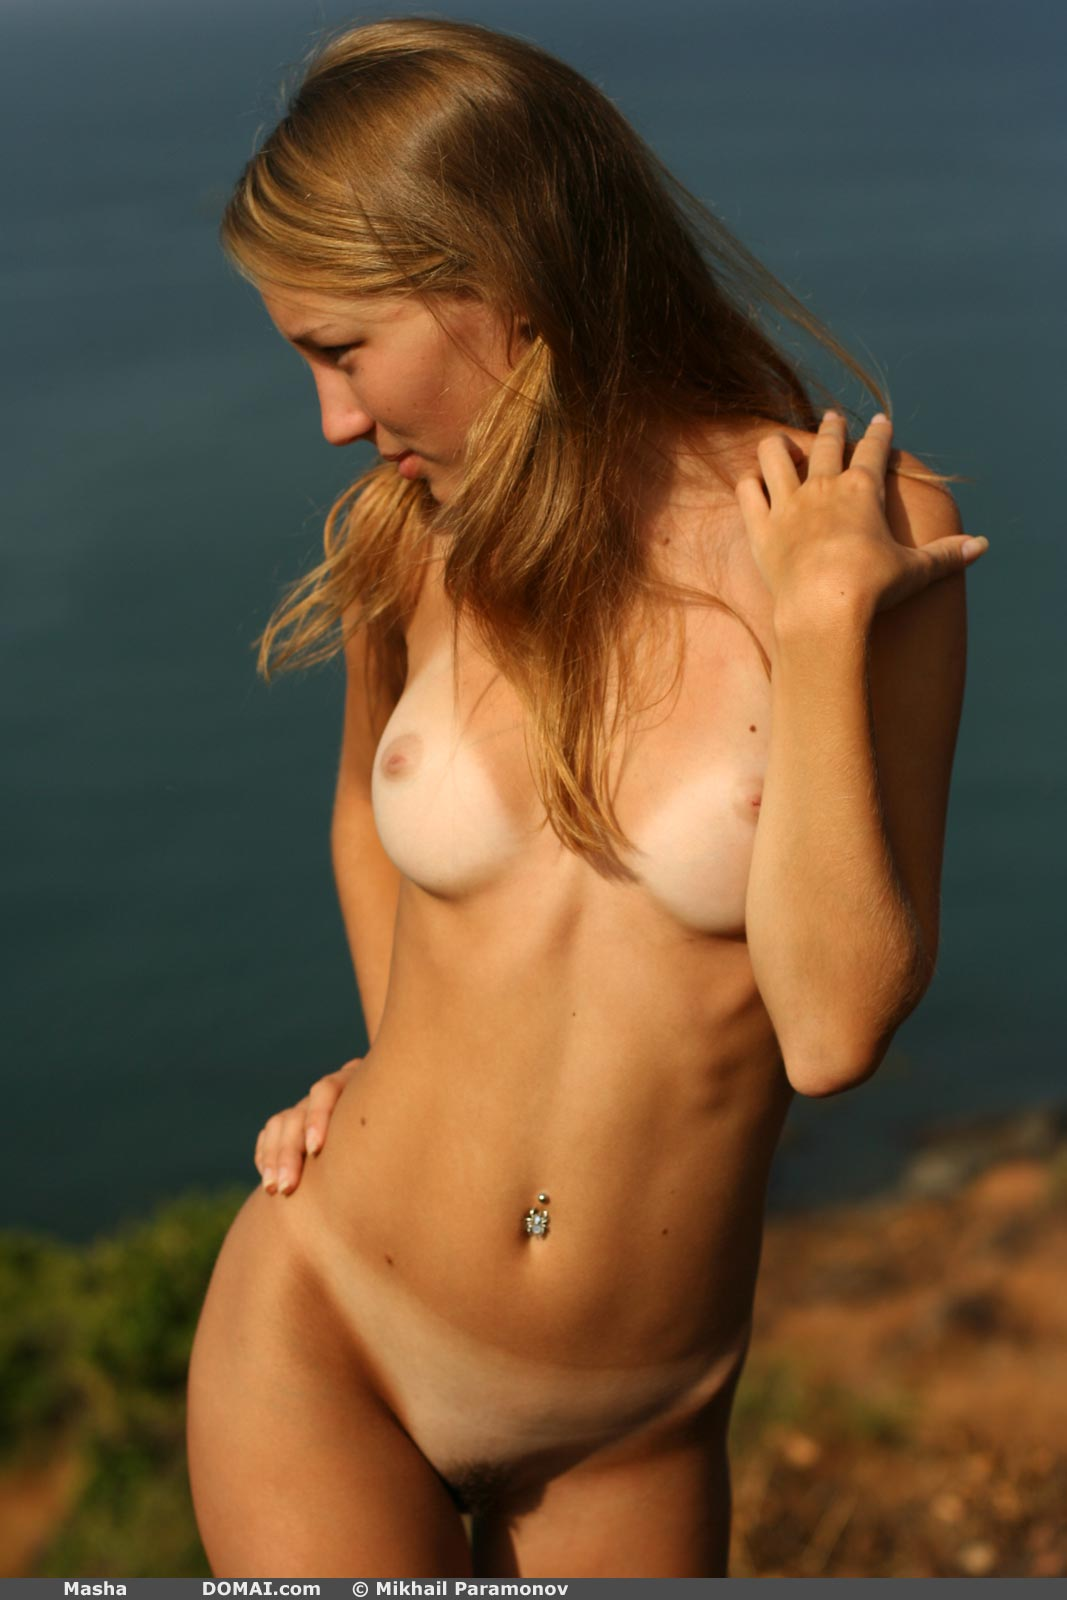 most hottest women naked